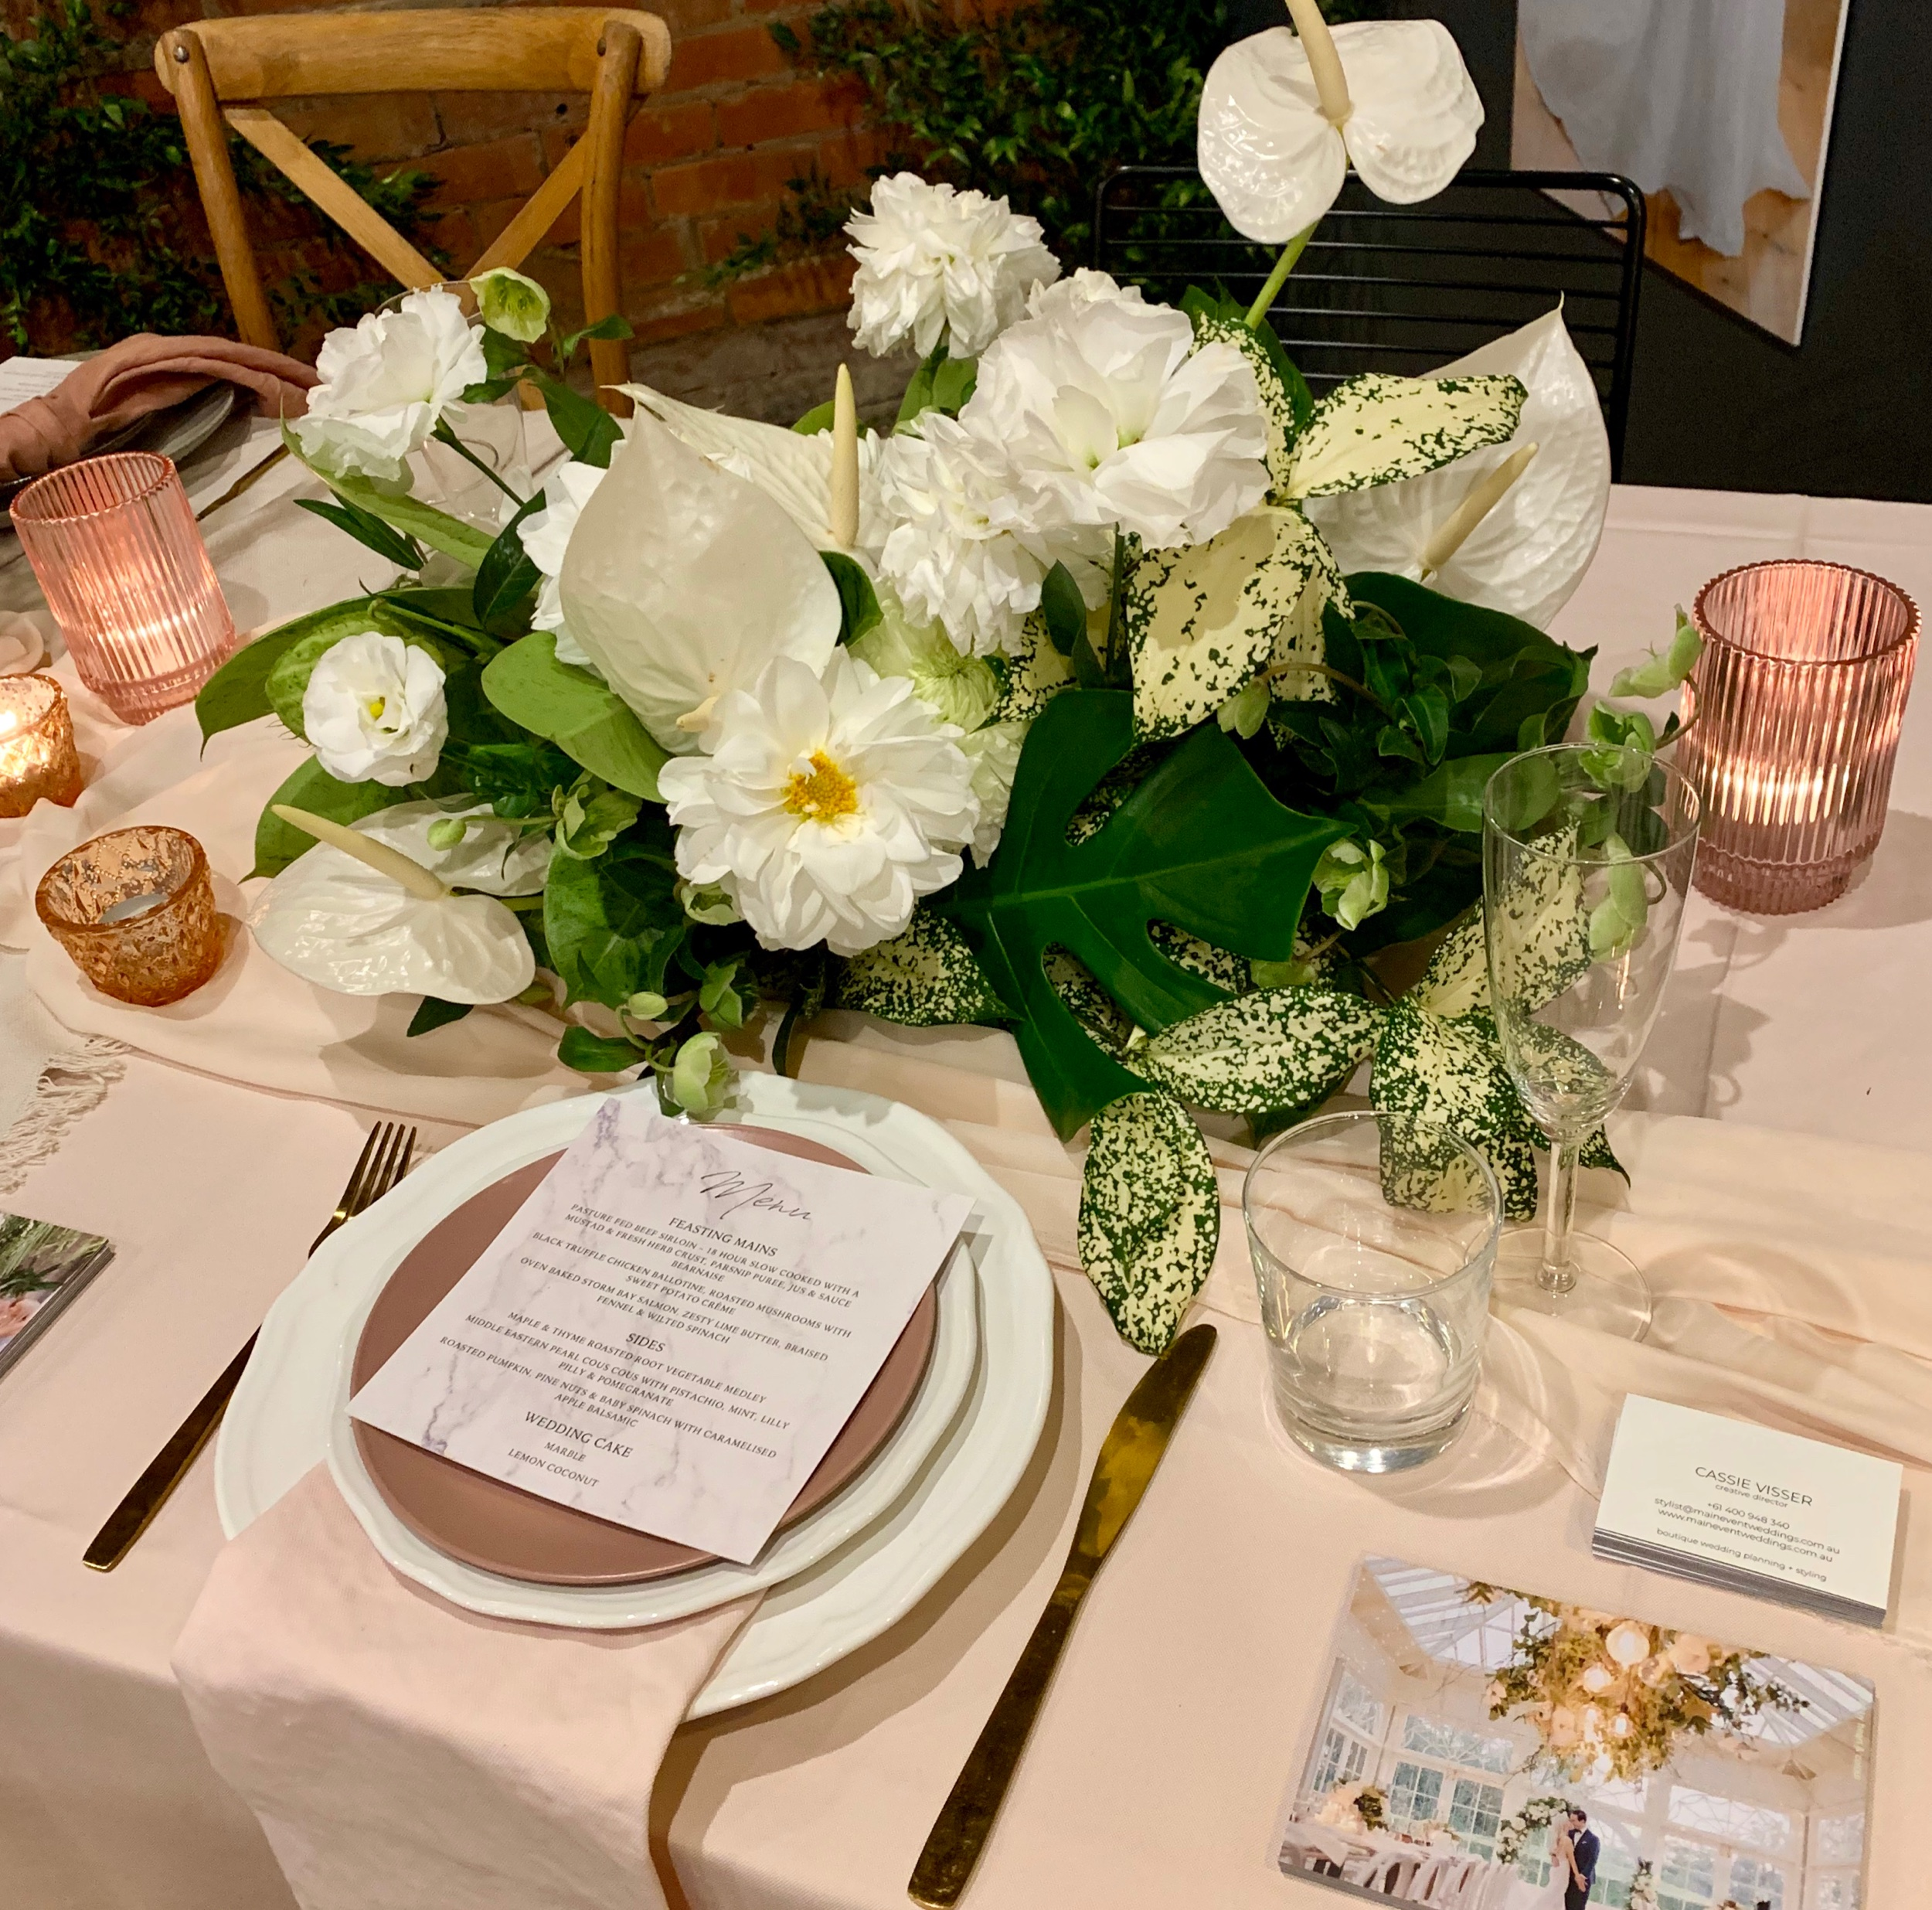 Wedding Harvest Reception Table Setting White Floral Centrepiece Gold Cutlery Main Event Weddings